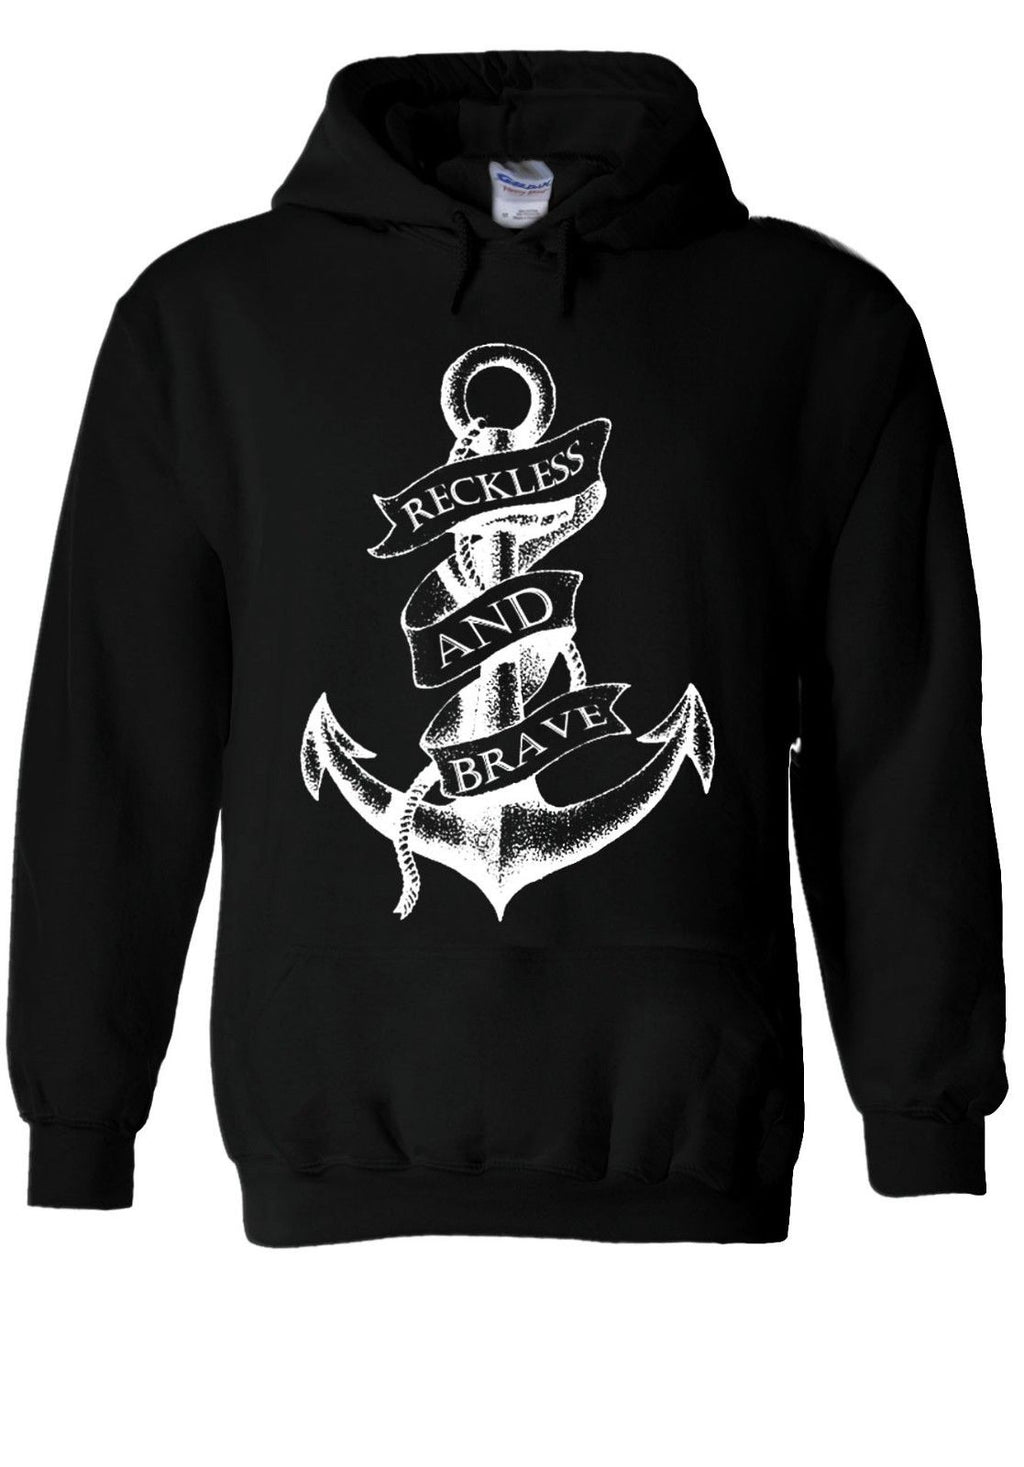 Sailor Anchor Reckless And Brave Sweatshirt Seaman